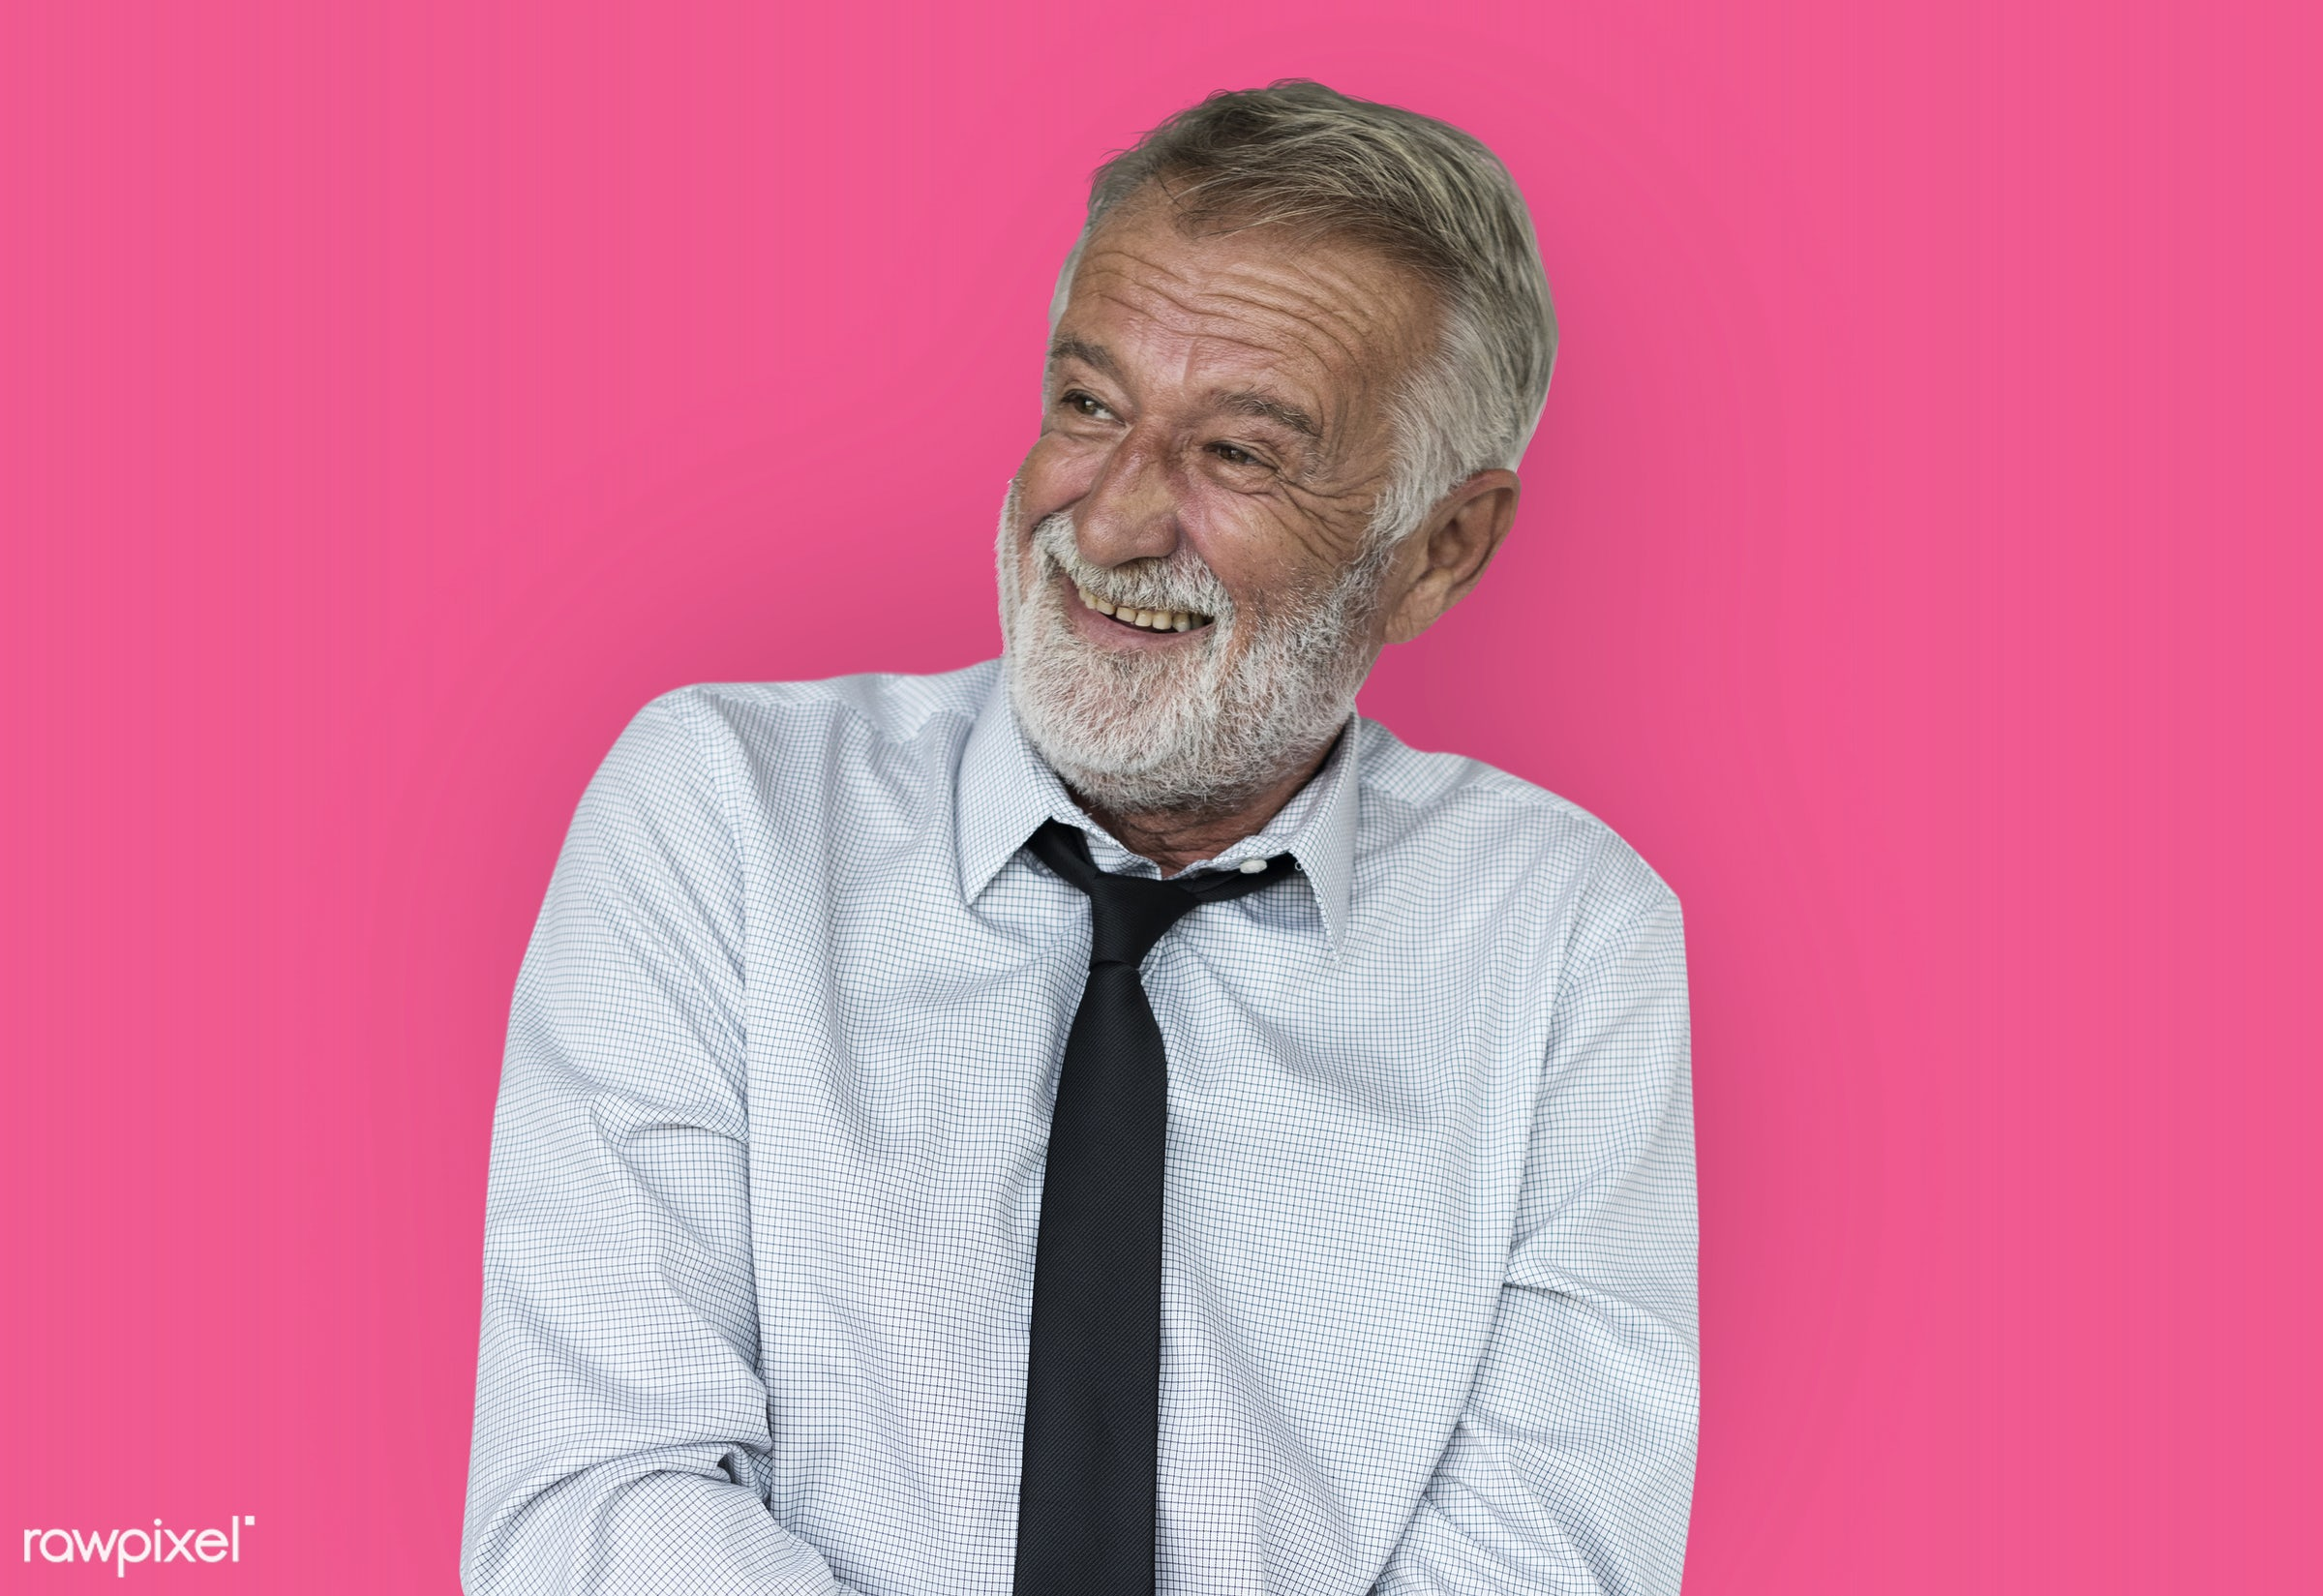 expression, studio, old, person, business wear, joy, people, caucasian, joyous, happy, smile, cheerful, smiling, man, formal...